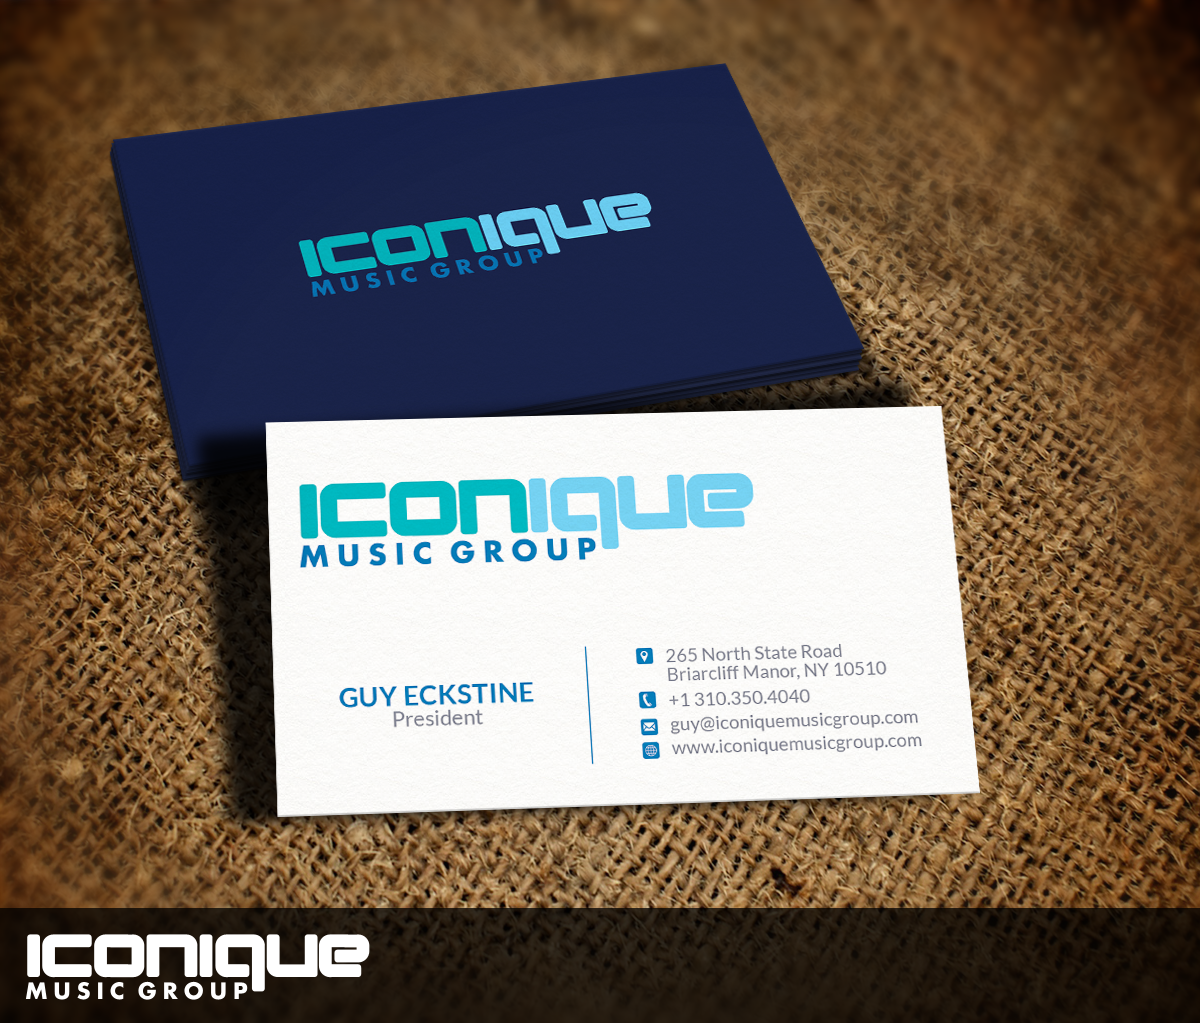 Business Card Design for Iconique Music Group by Nelsur | Design ...